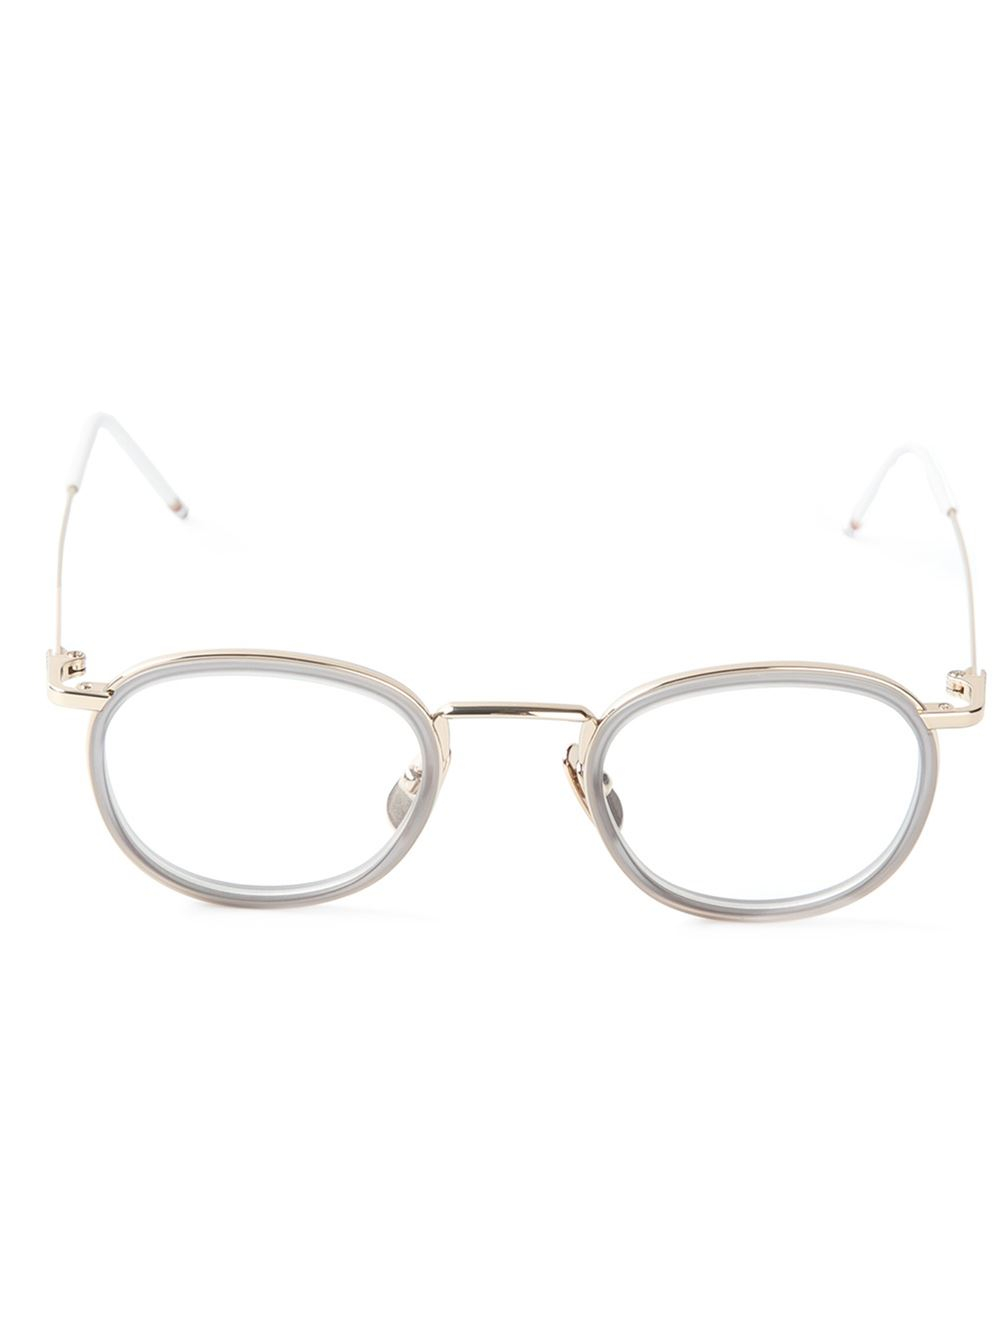 Lyst - Thom Browne Clip On Round Frame Glasses in Gray for Men